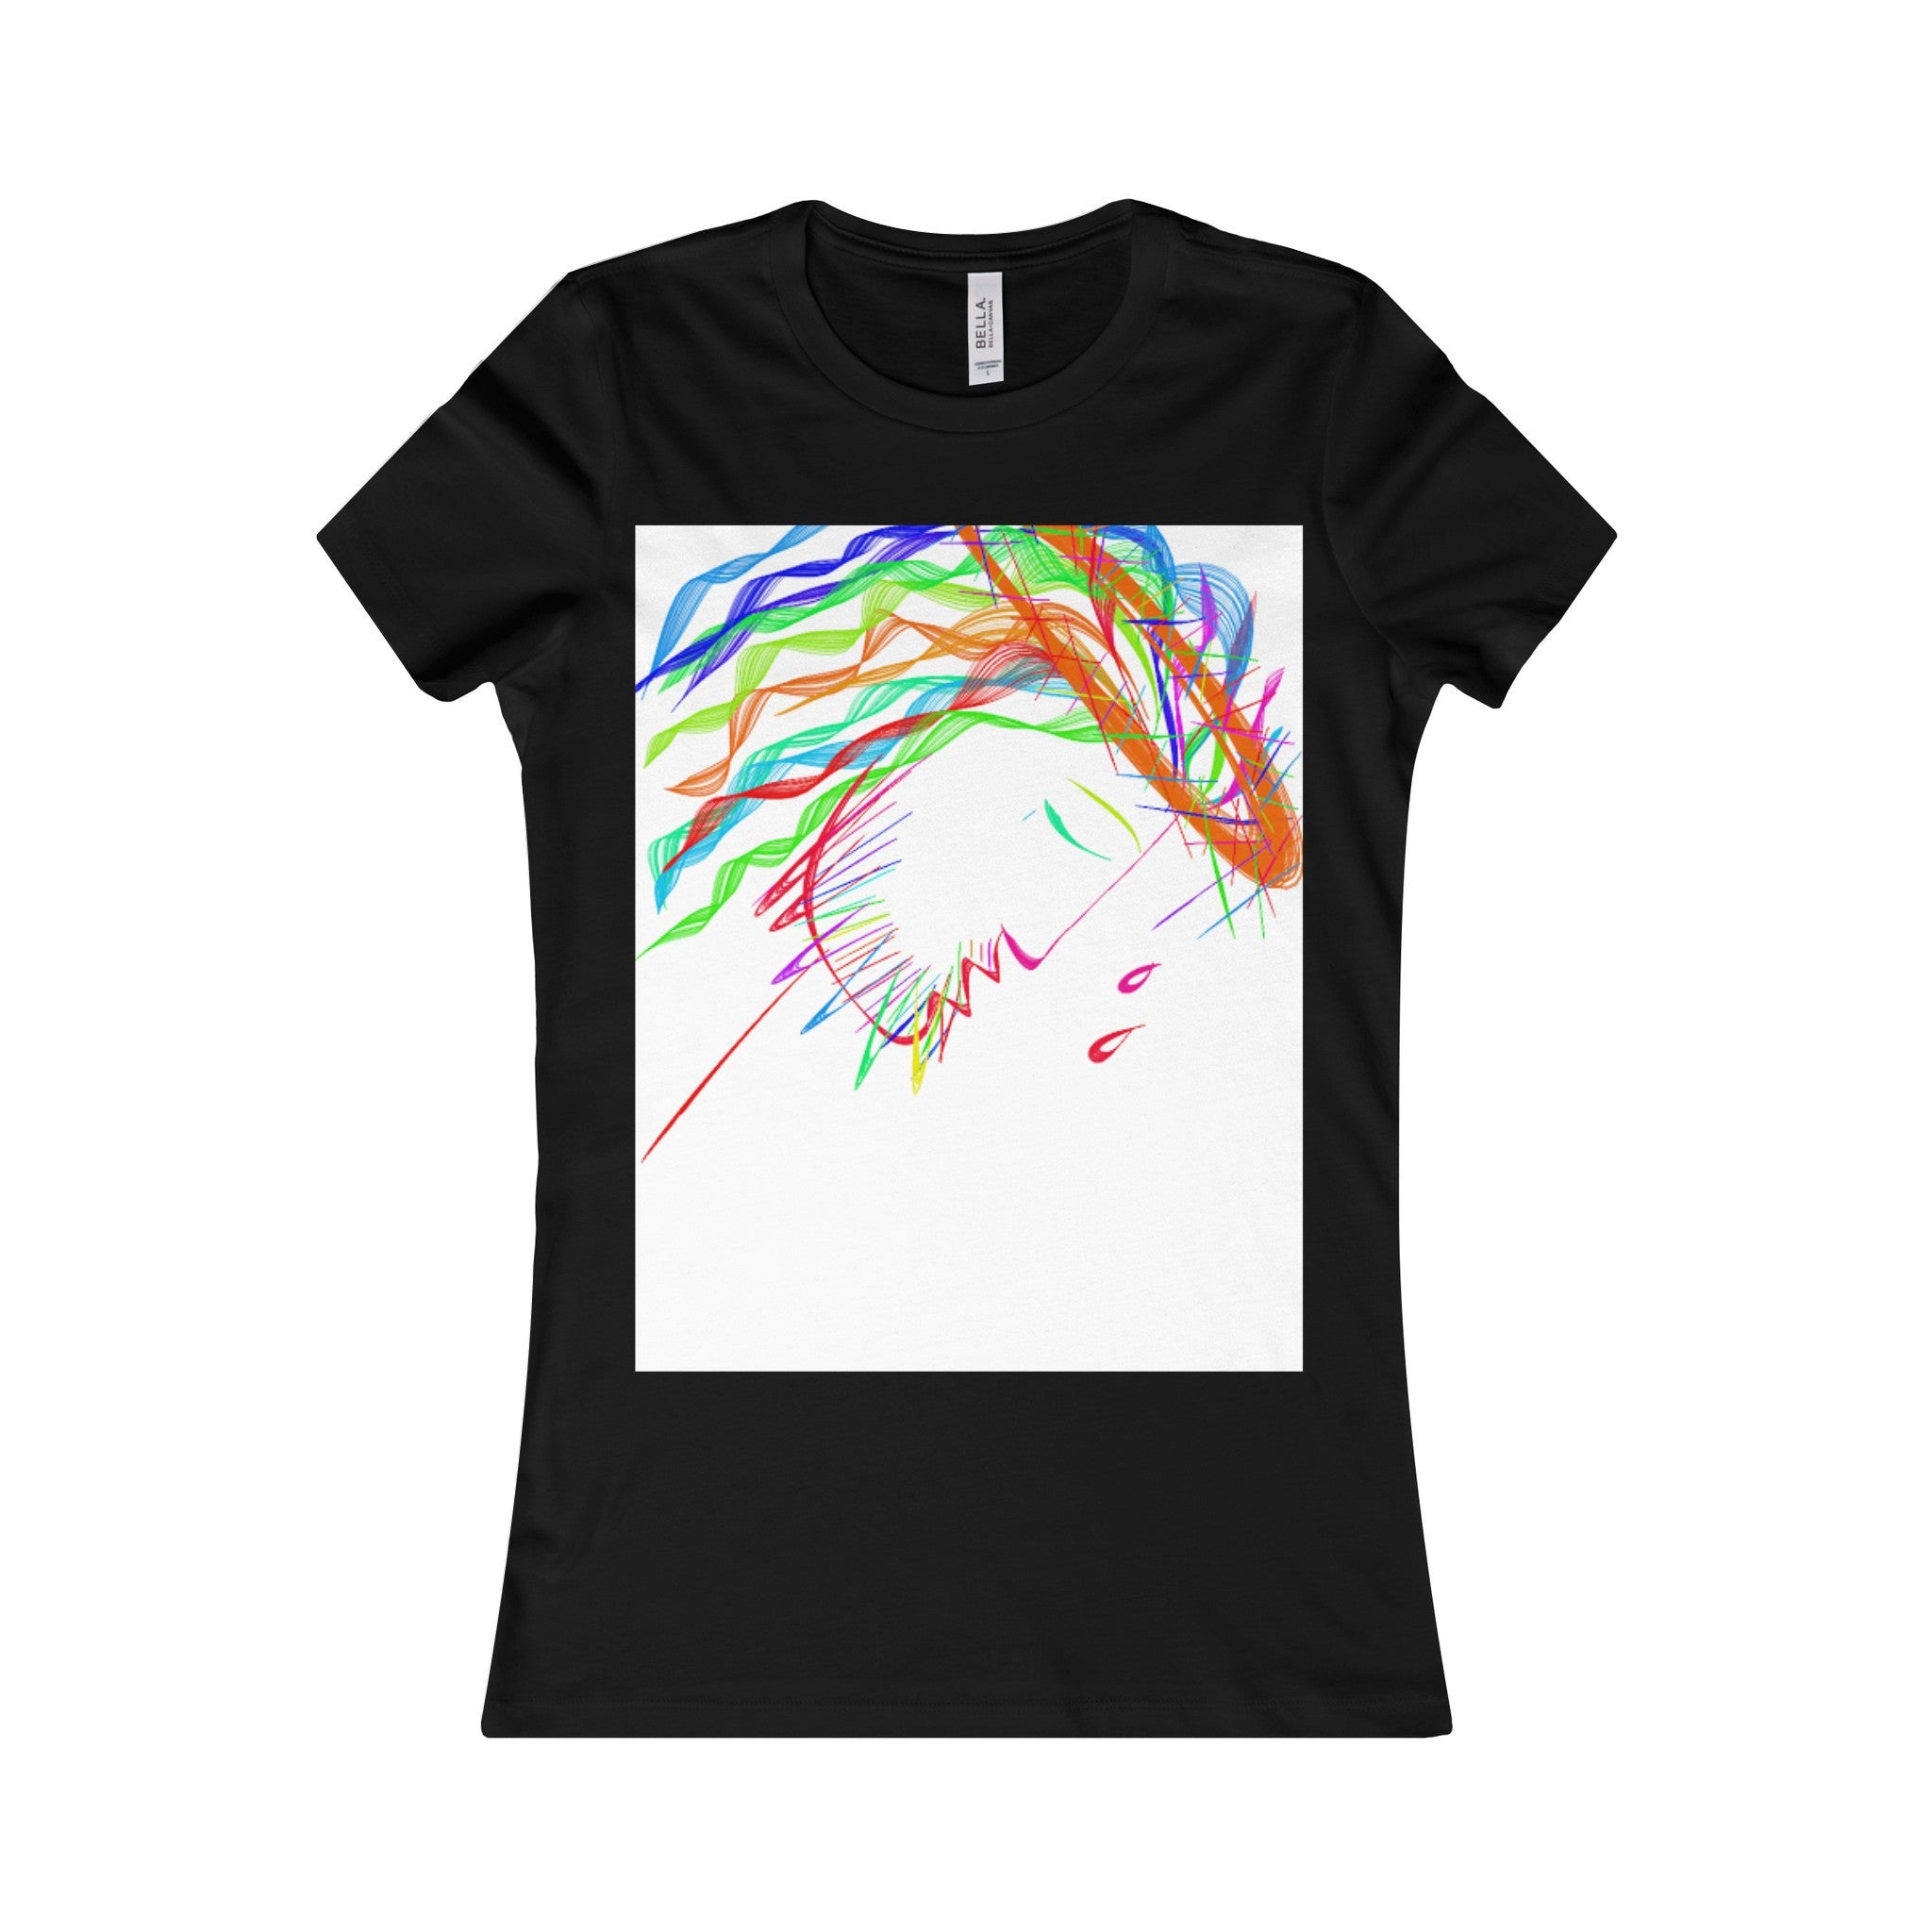 Women's Favorite Tee-T-Shirt-Printify-Black-S-Love My Husband Shop